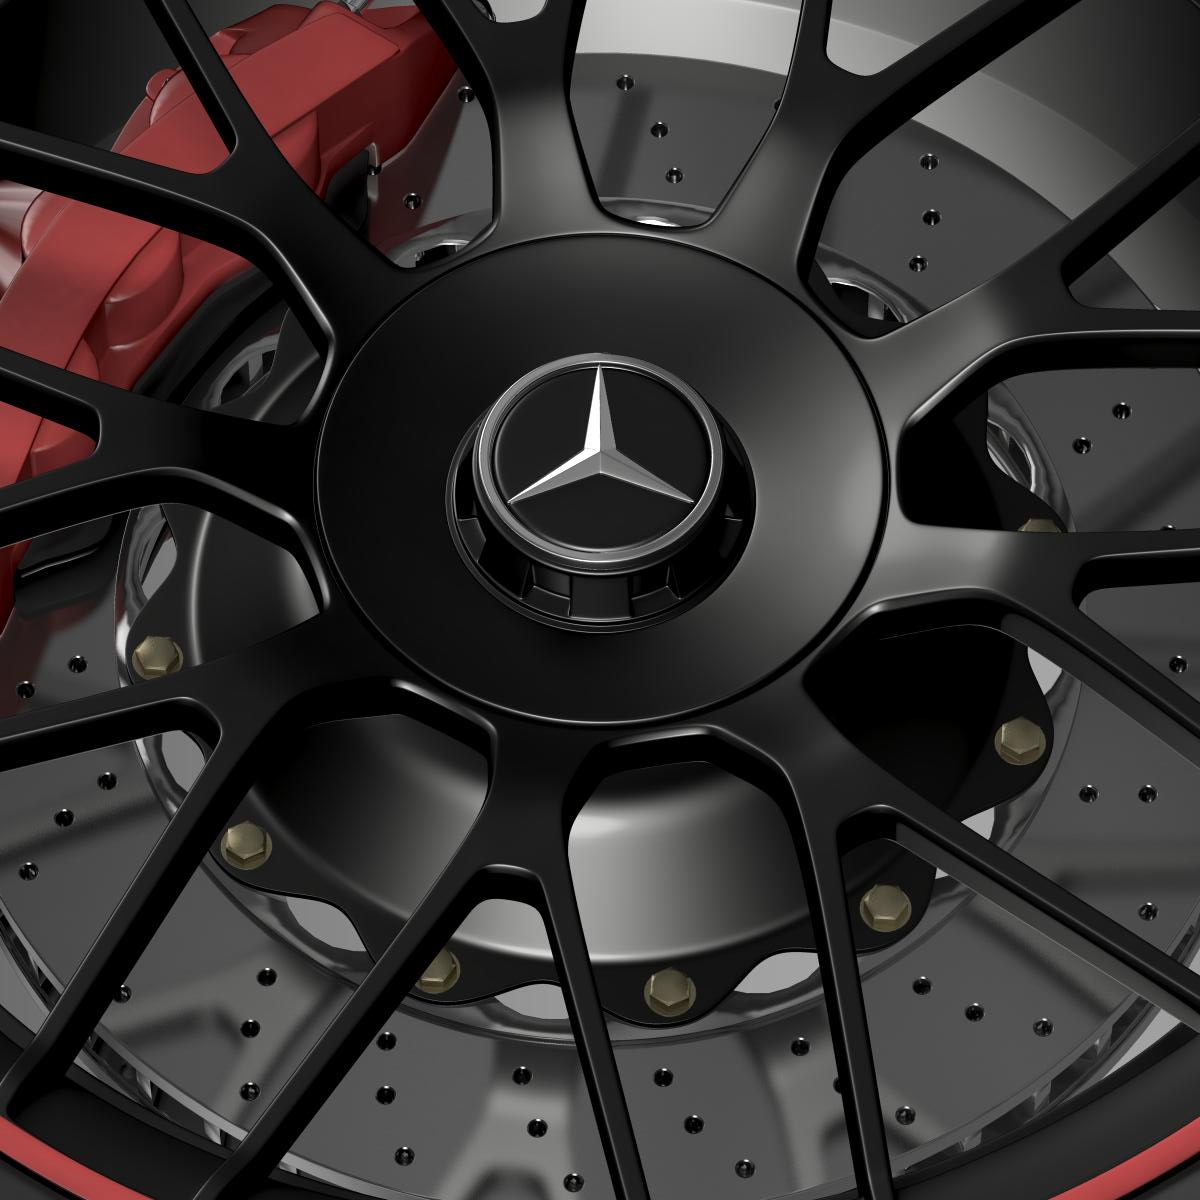 mercedes amg c 63 s edition wheel 3d model 3ds max fbx c4d lwo ma mb hrc xsi obj 210747